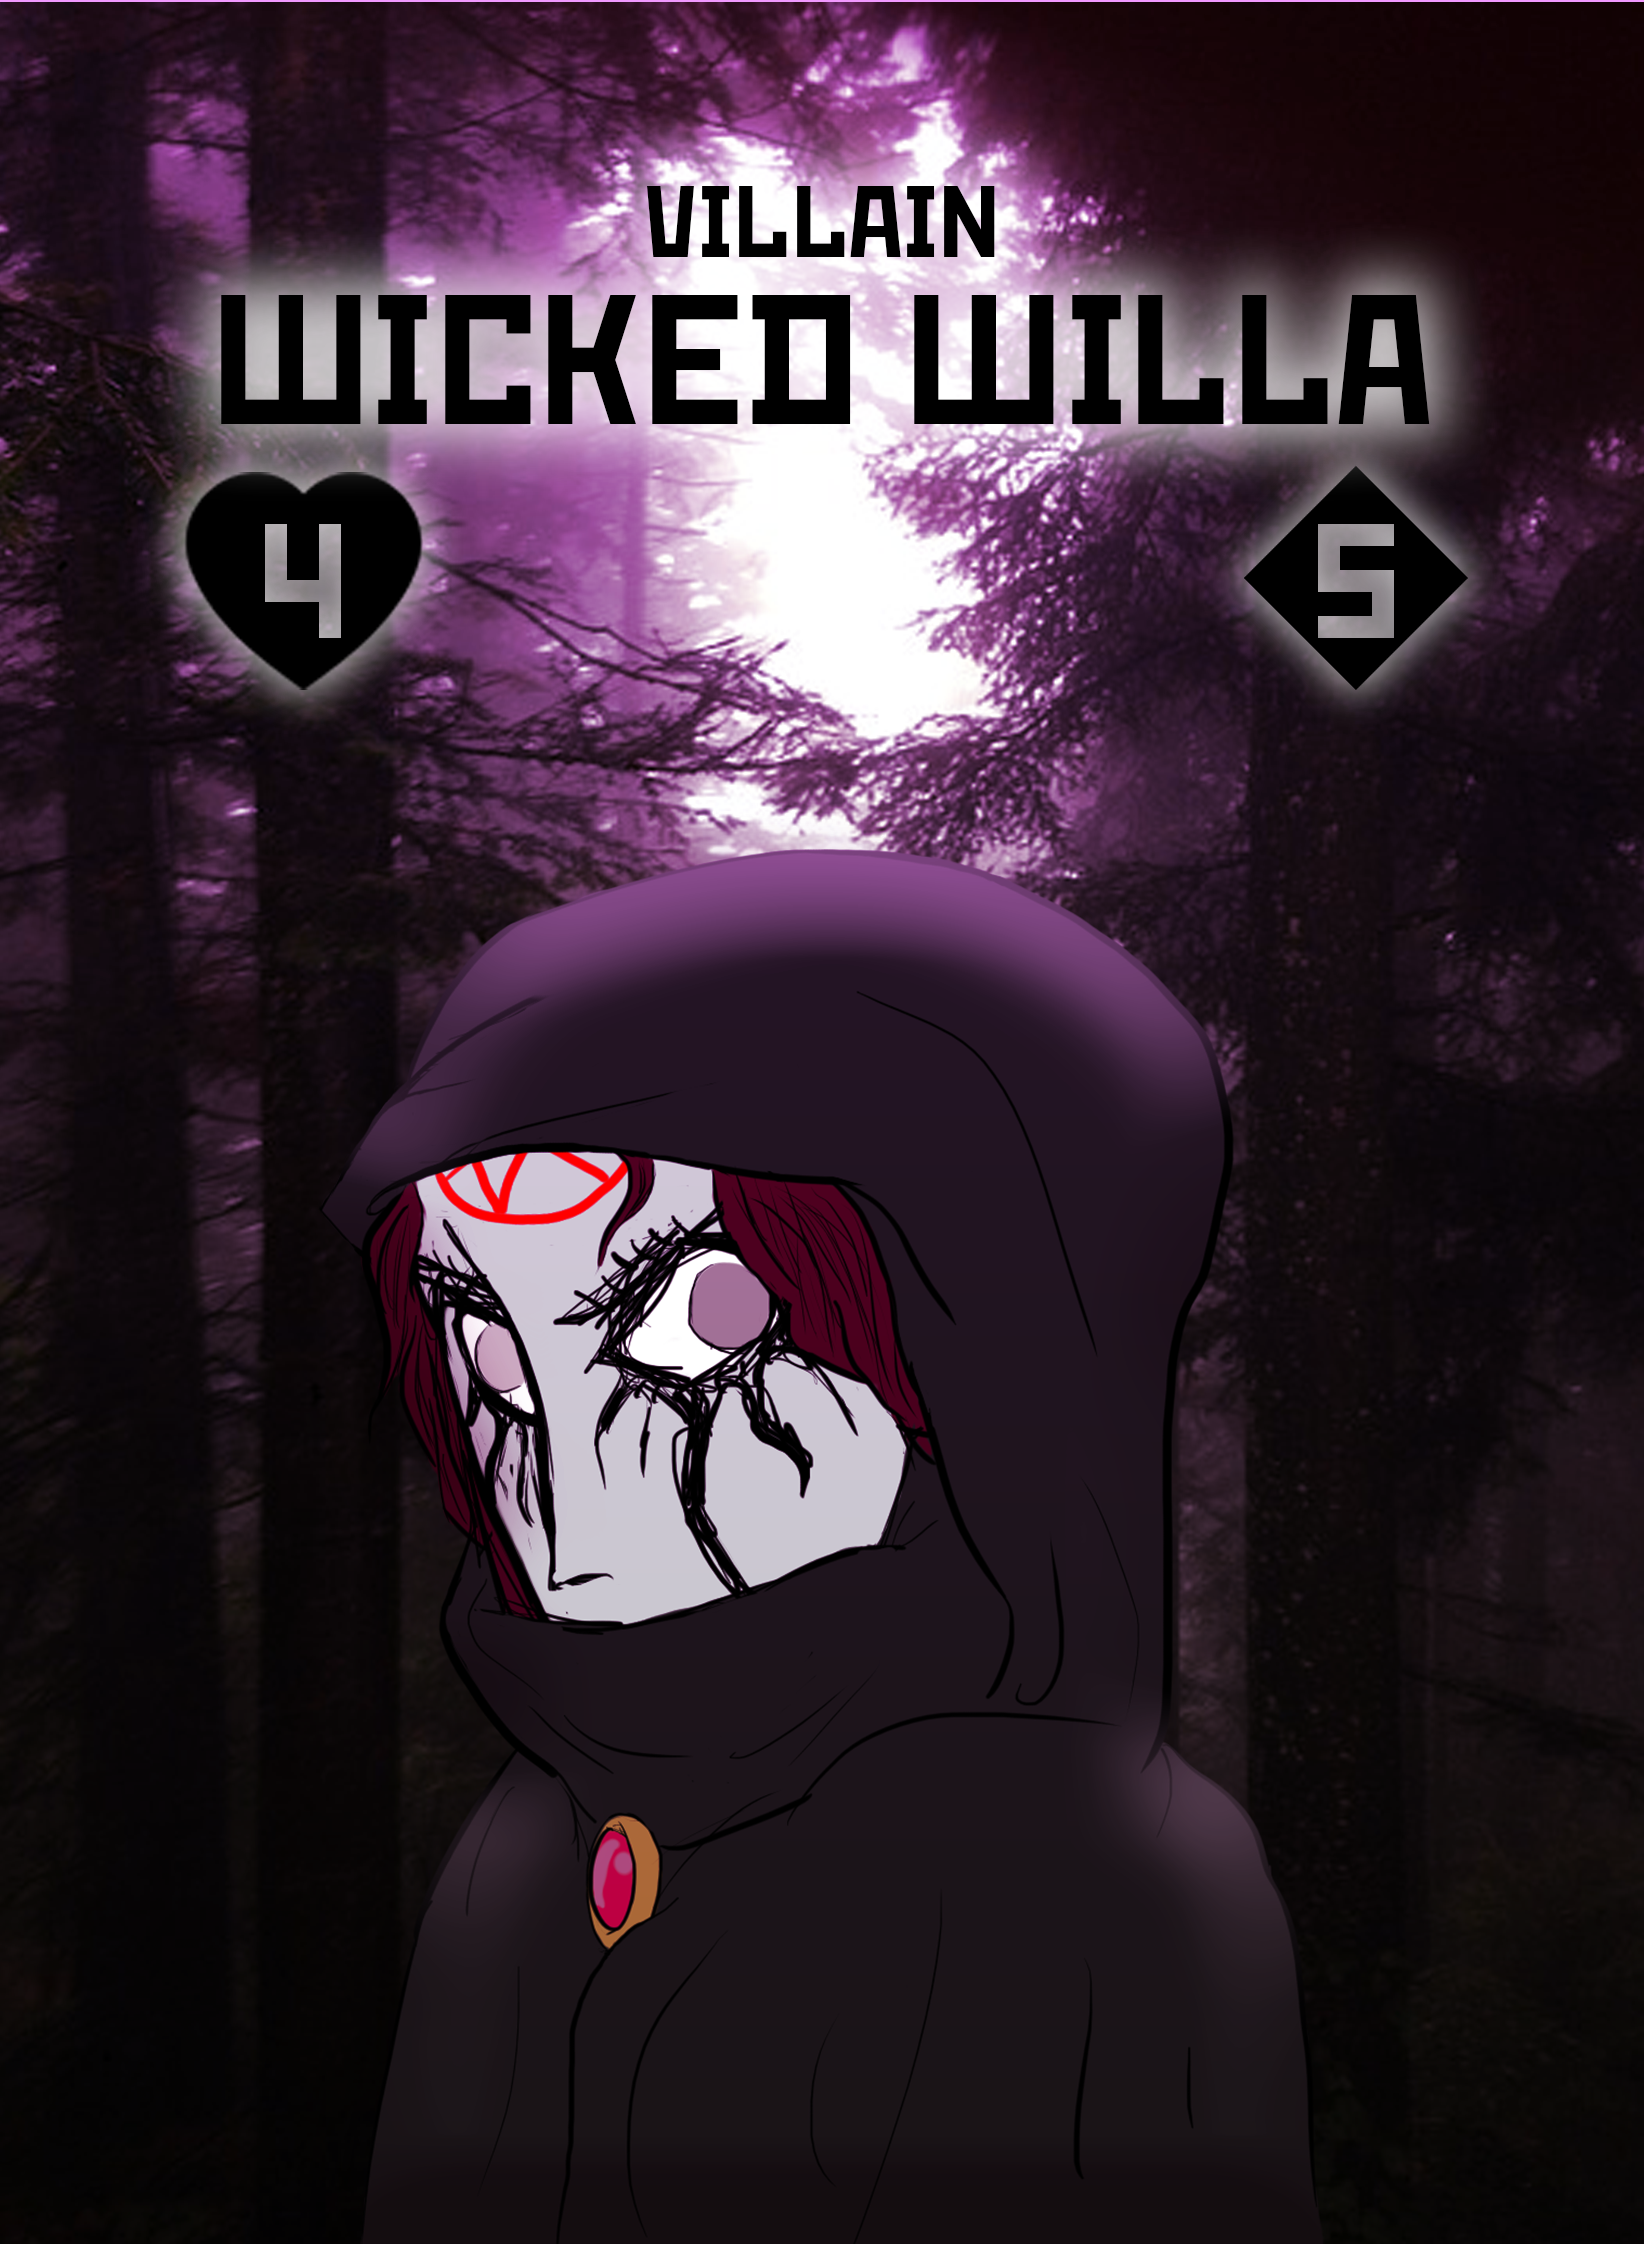 dastardly-villain-wicked willa.png